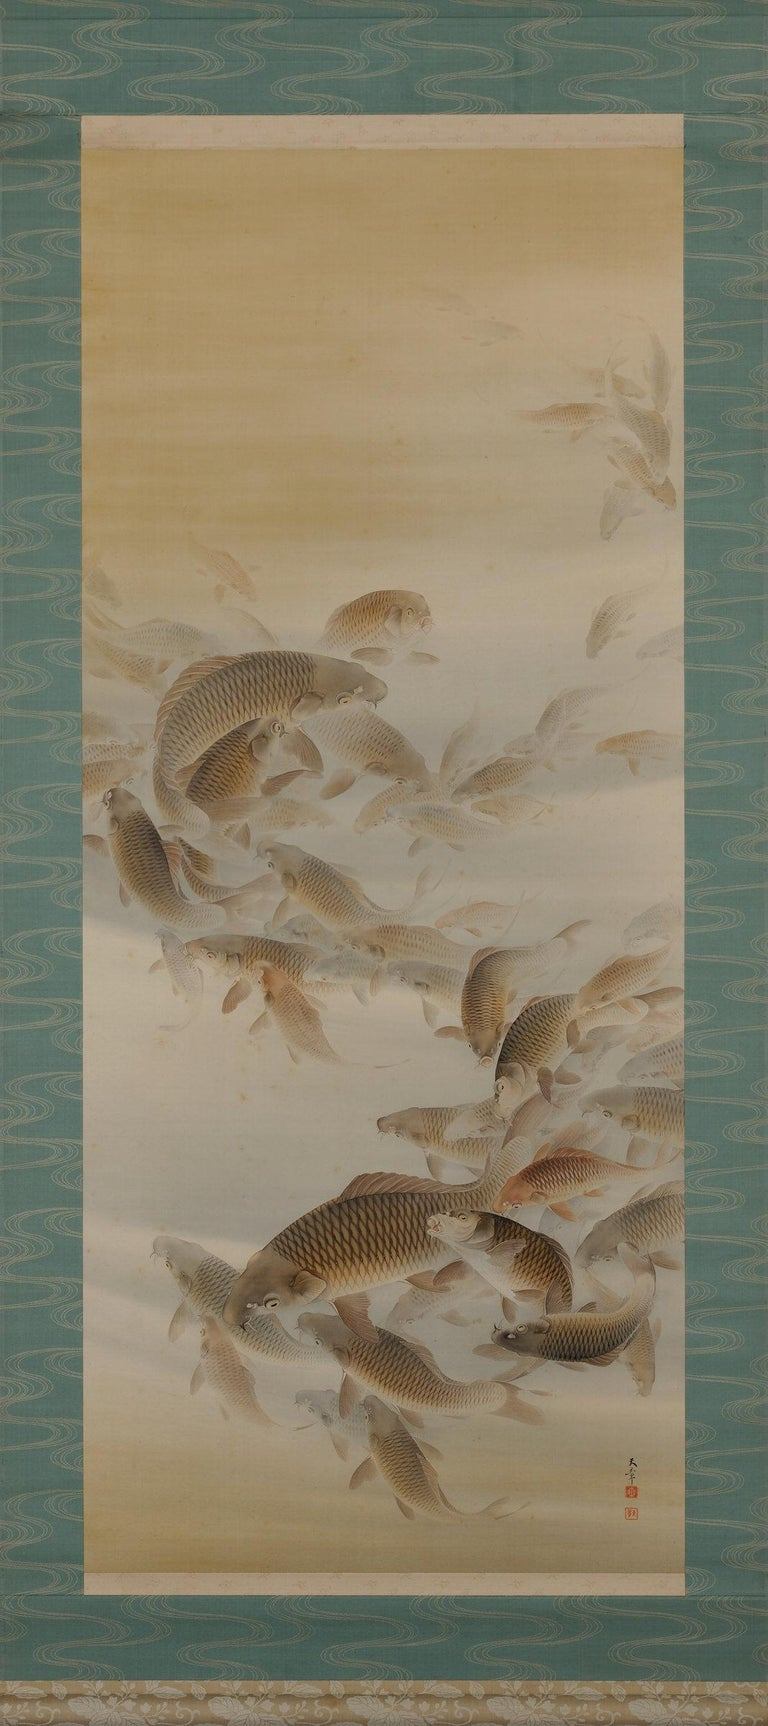 Group of carp  Matsunaga Tensho (1897-1945)  Hanging scroll; ink, colour and gold on silk.  Painting inscription: Tensho  Painting seals: - Matsu in - Tensho   Box inscription: Tensho Jitsu Kinsho   Box seals: - Matsunaga Jitsu In  - Tensho